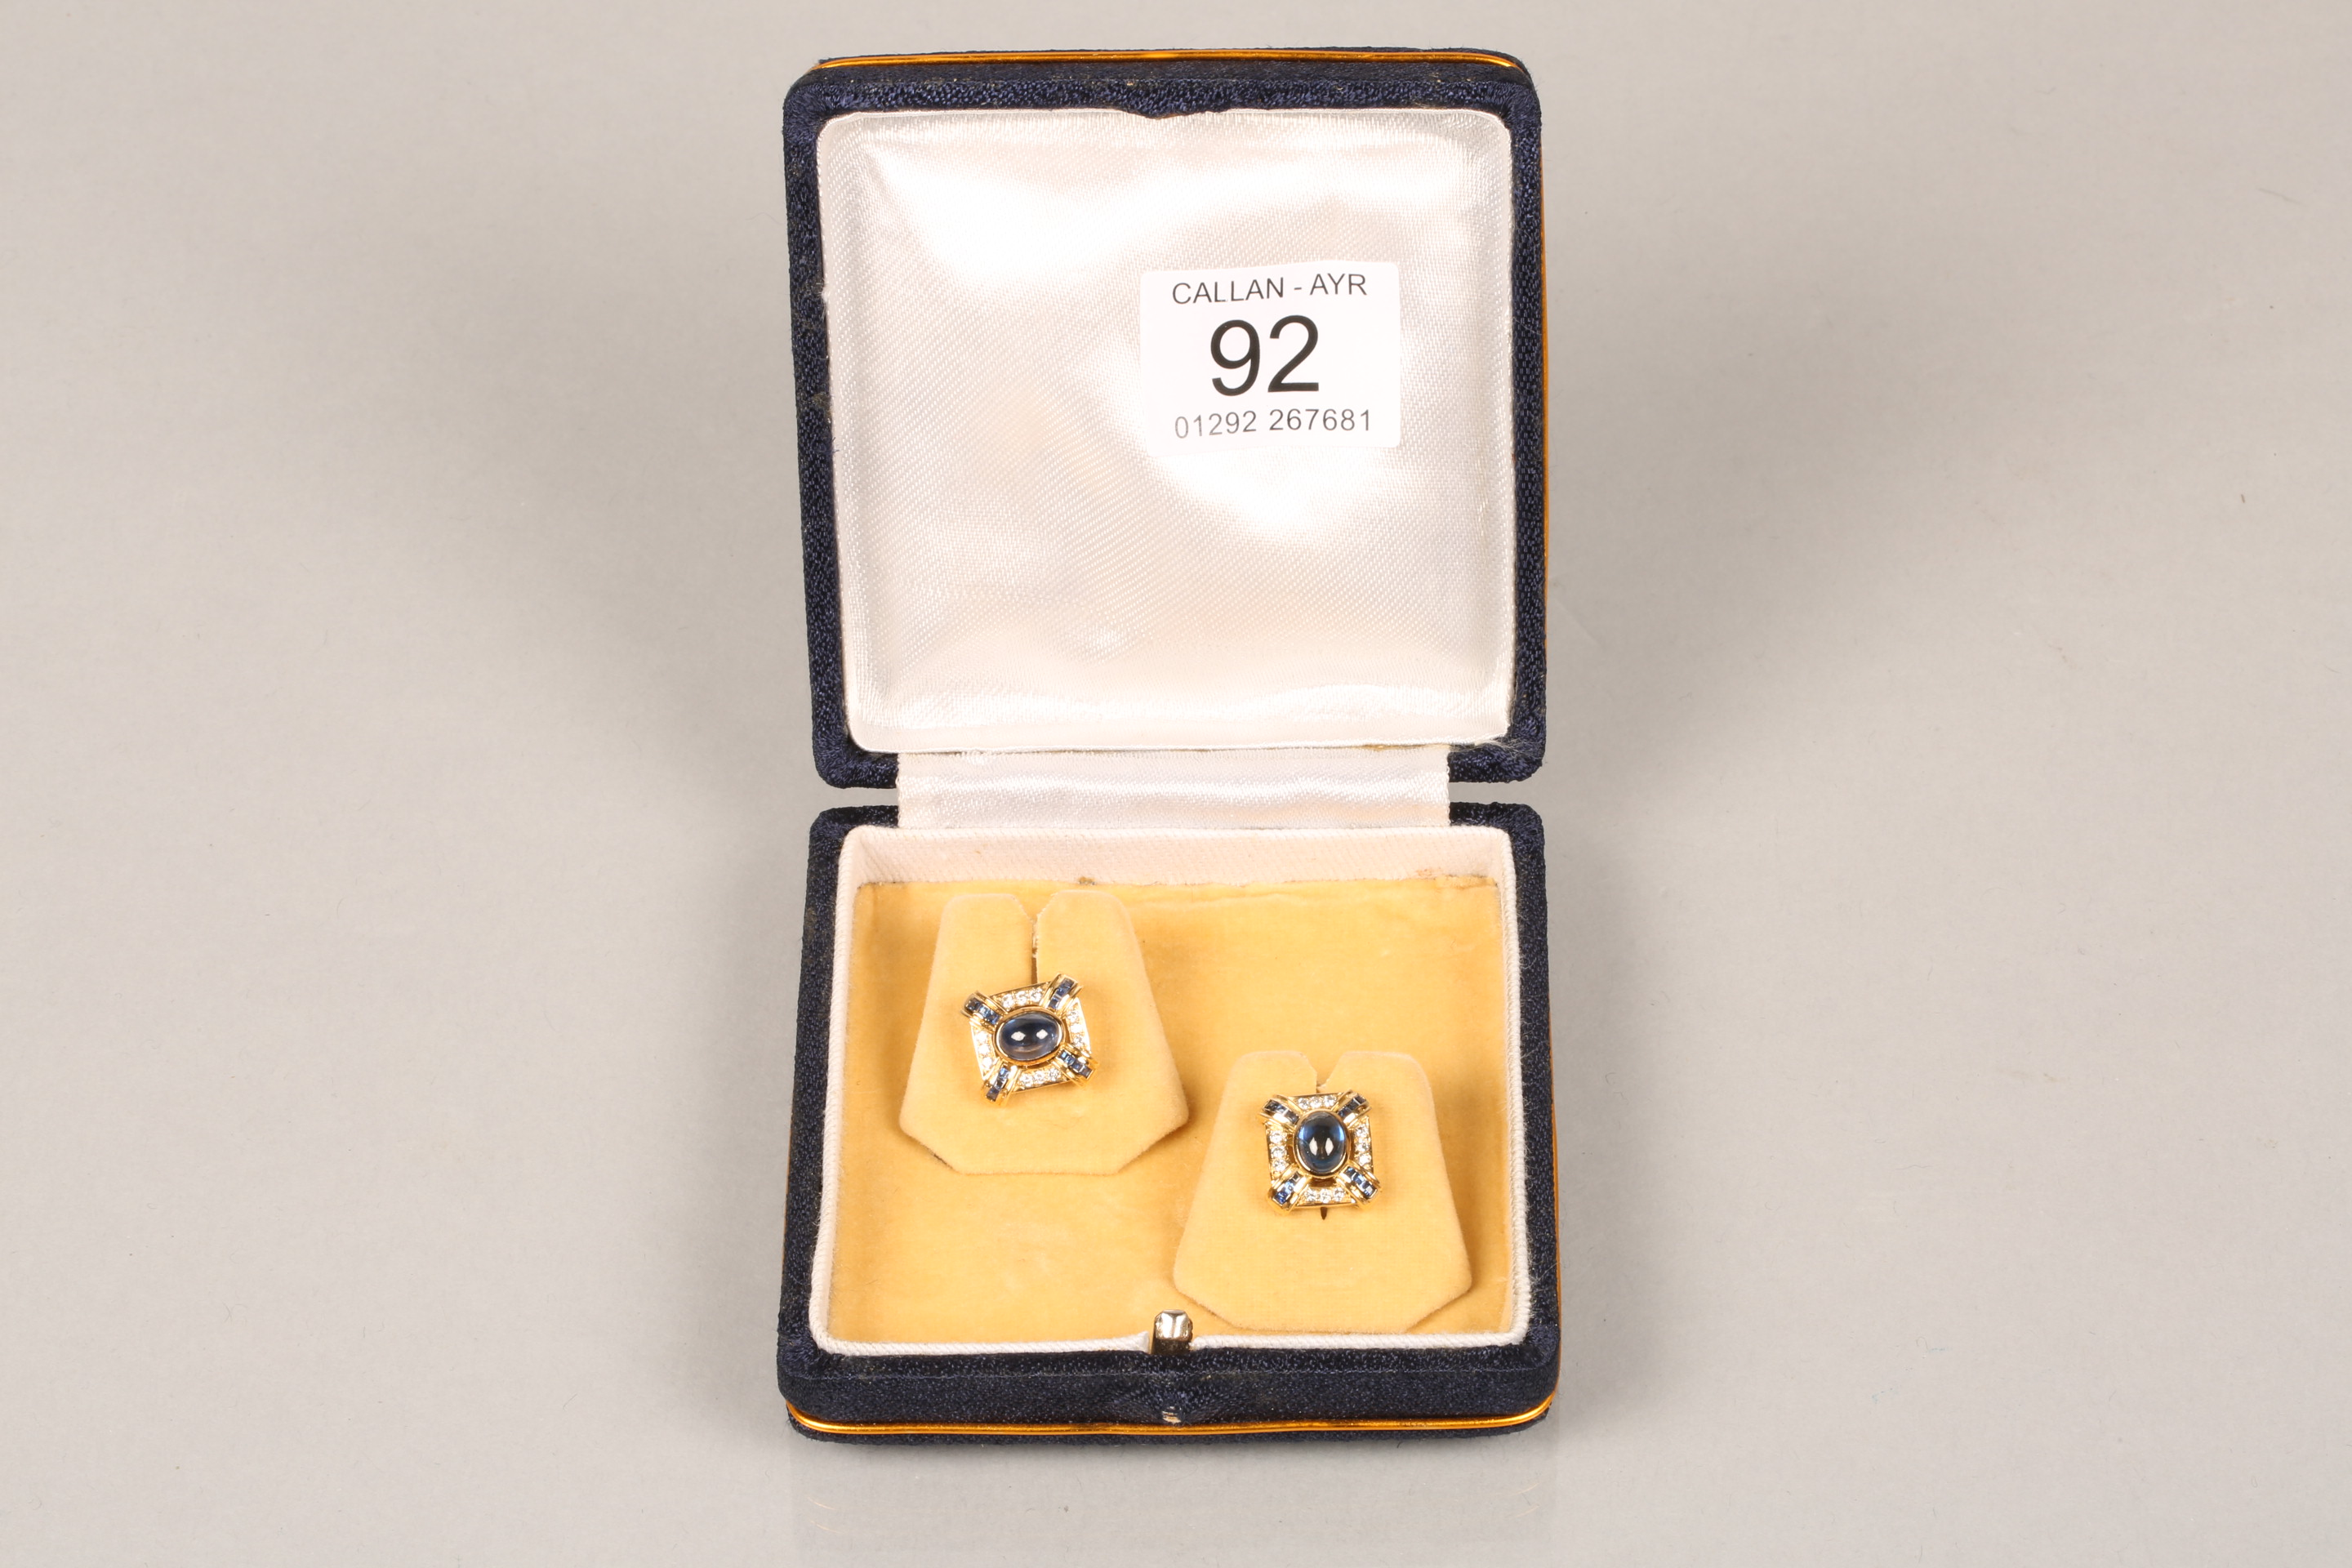 Boxed pair of 18 carat gold earrings, each set with a central blue sapphire cabochon surrounded by - Image 6 of 6